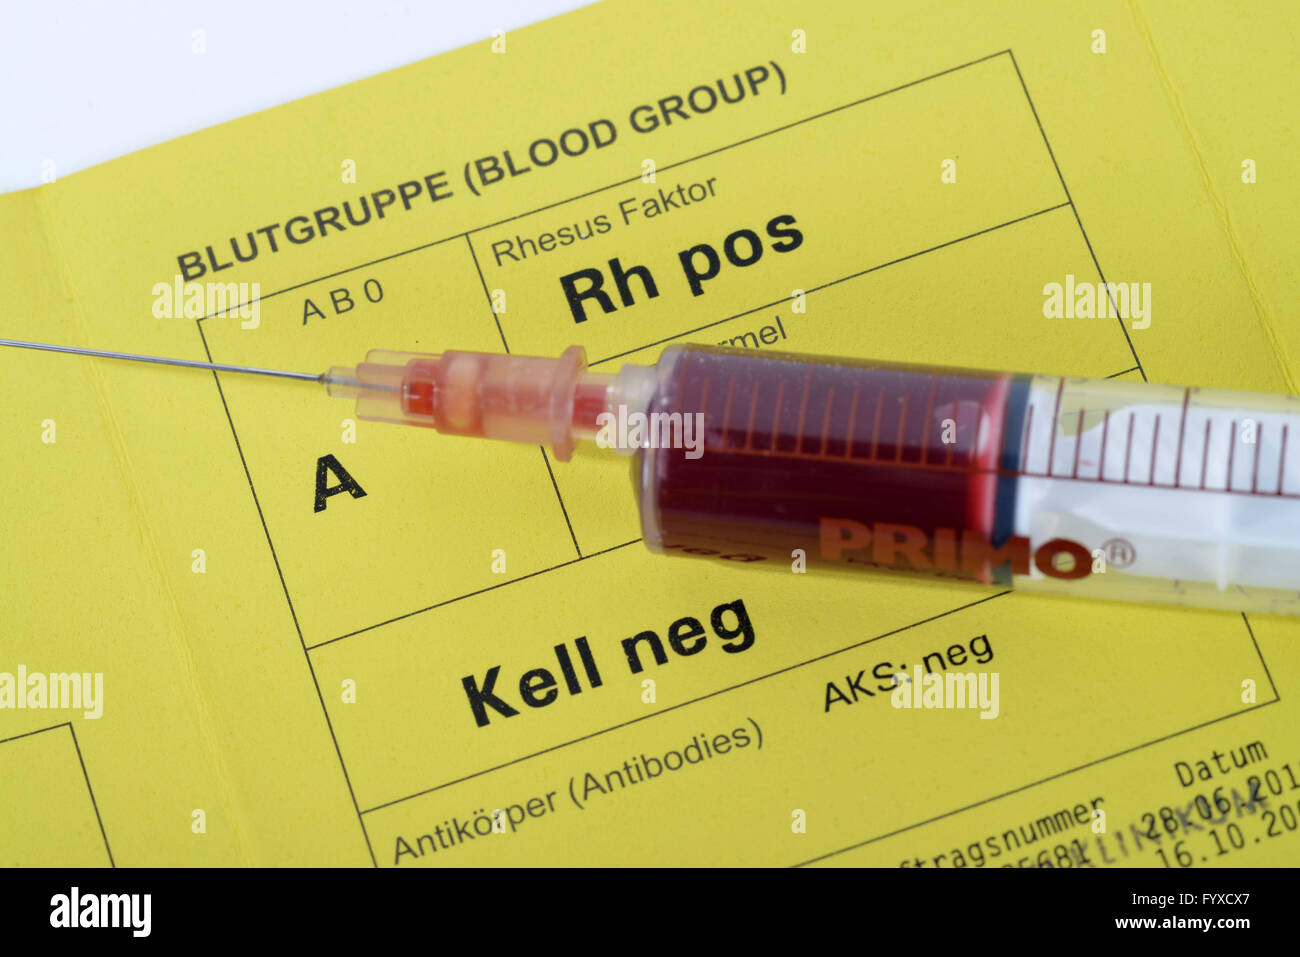 Blood group card stock photos blood group card stock images alamy blood group badge blood type card taking blood sample blood test a xflitez Images